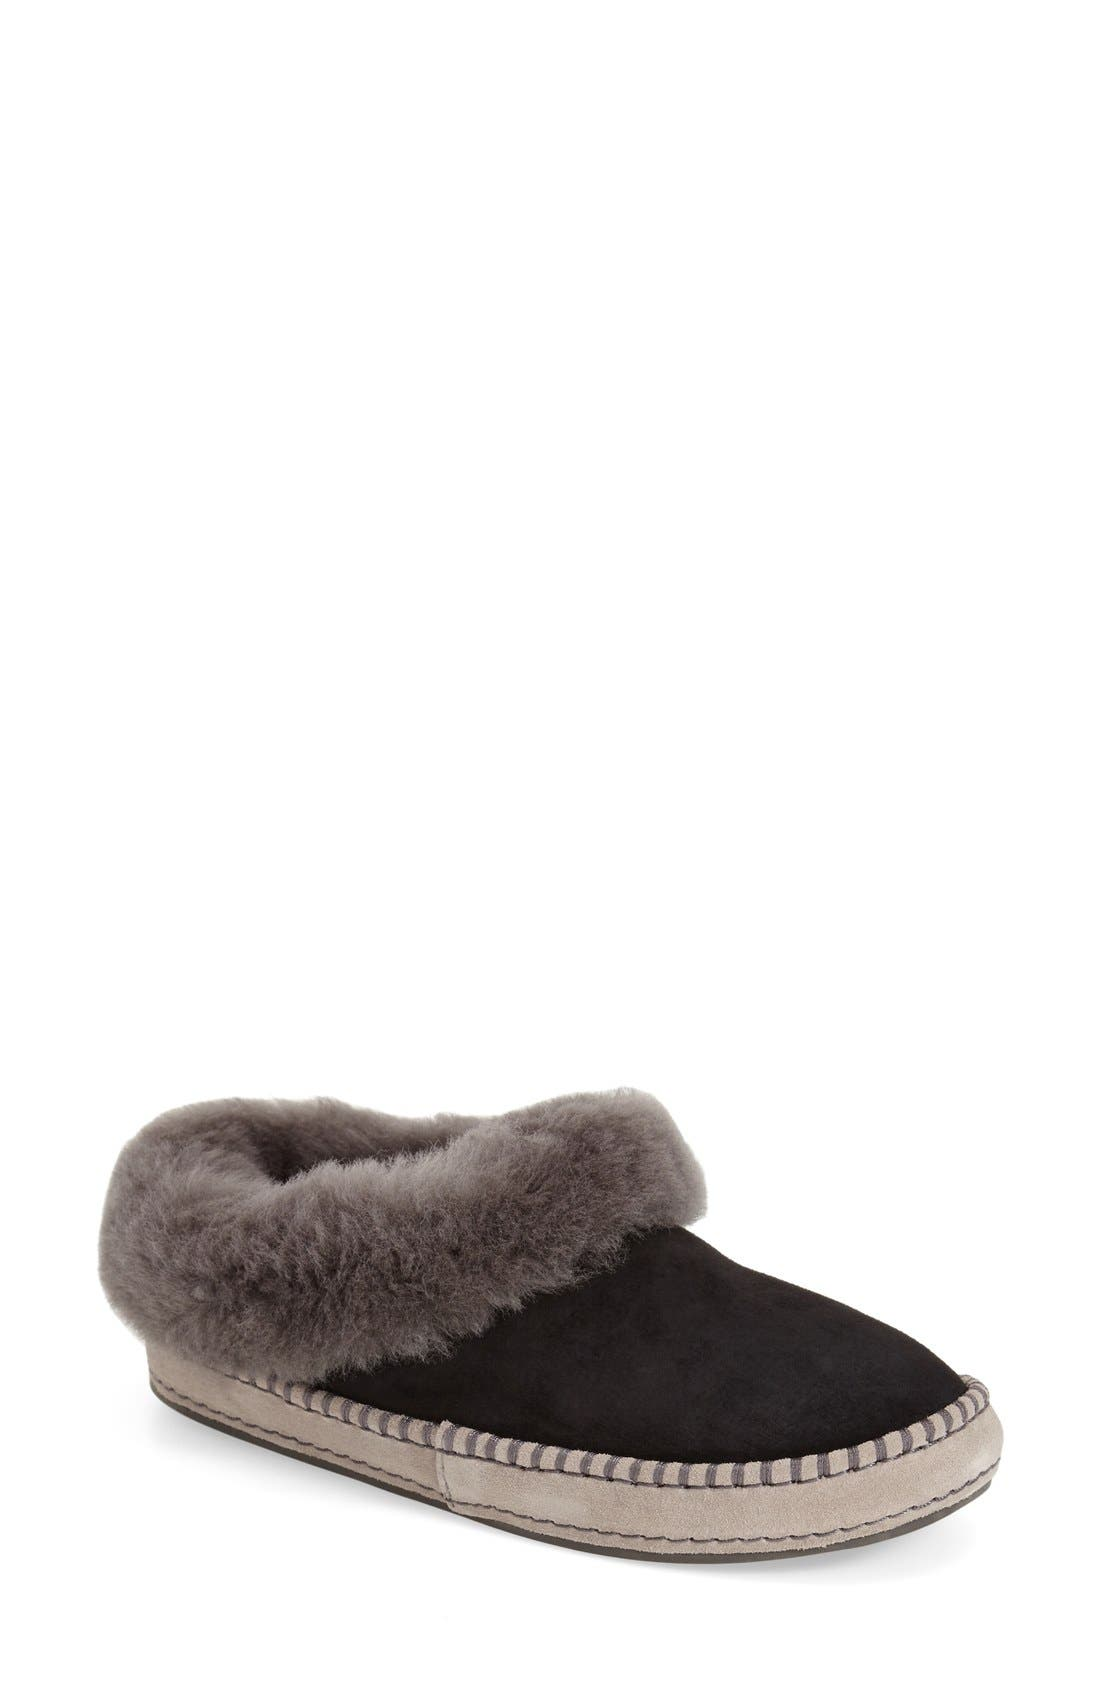 Main Image - UGG® Wrin Slipper (Women)